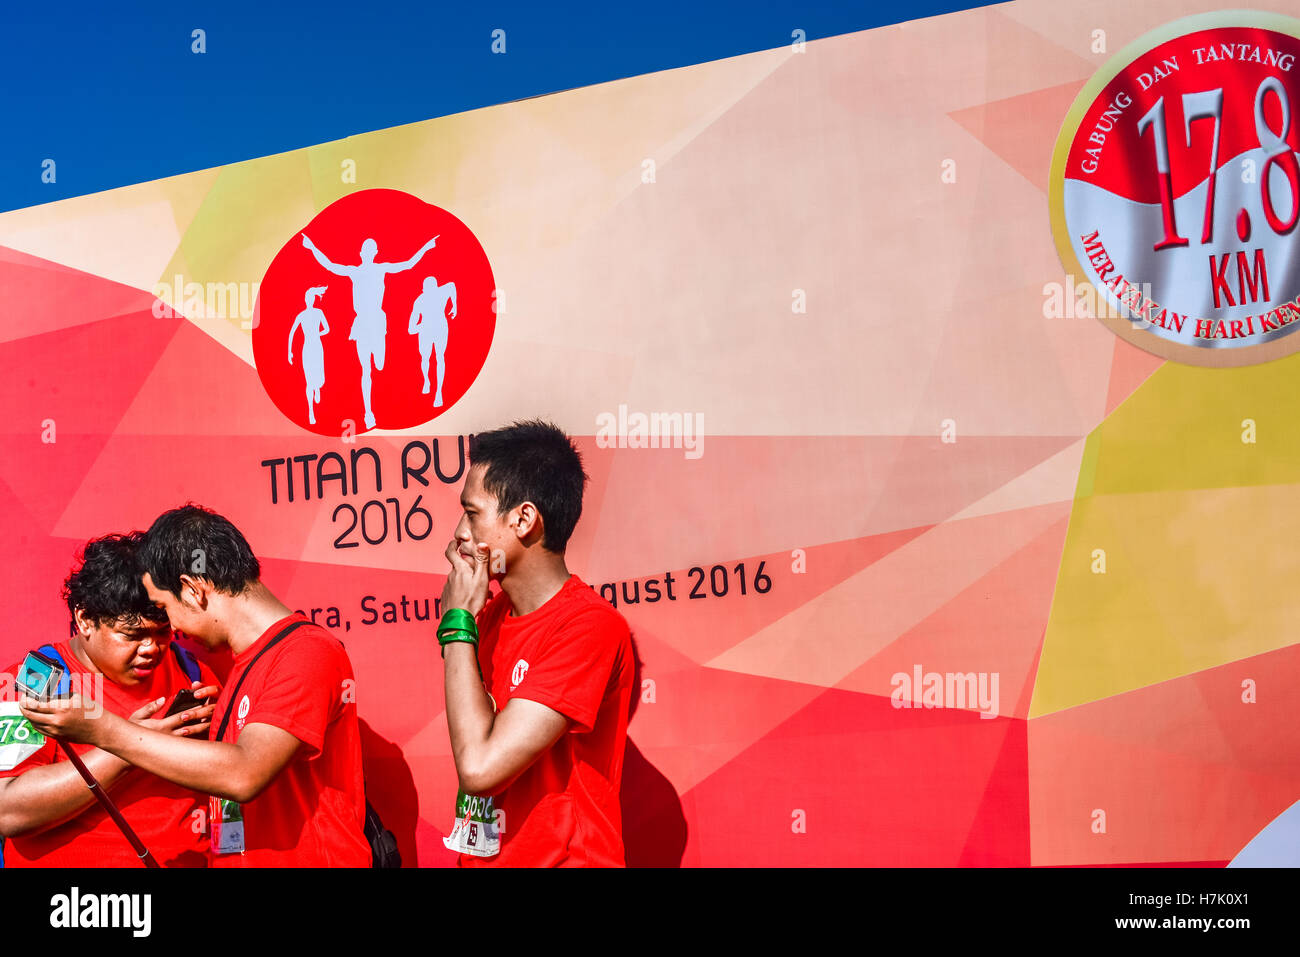 Young men about to take self-portrait photo with podium backdrop as background in Titan Run running event in Indonesia. - Stock Image